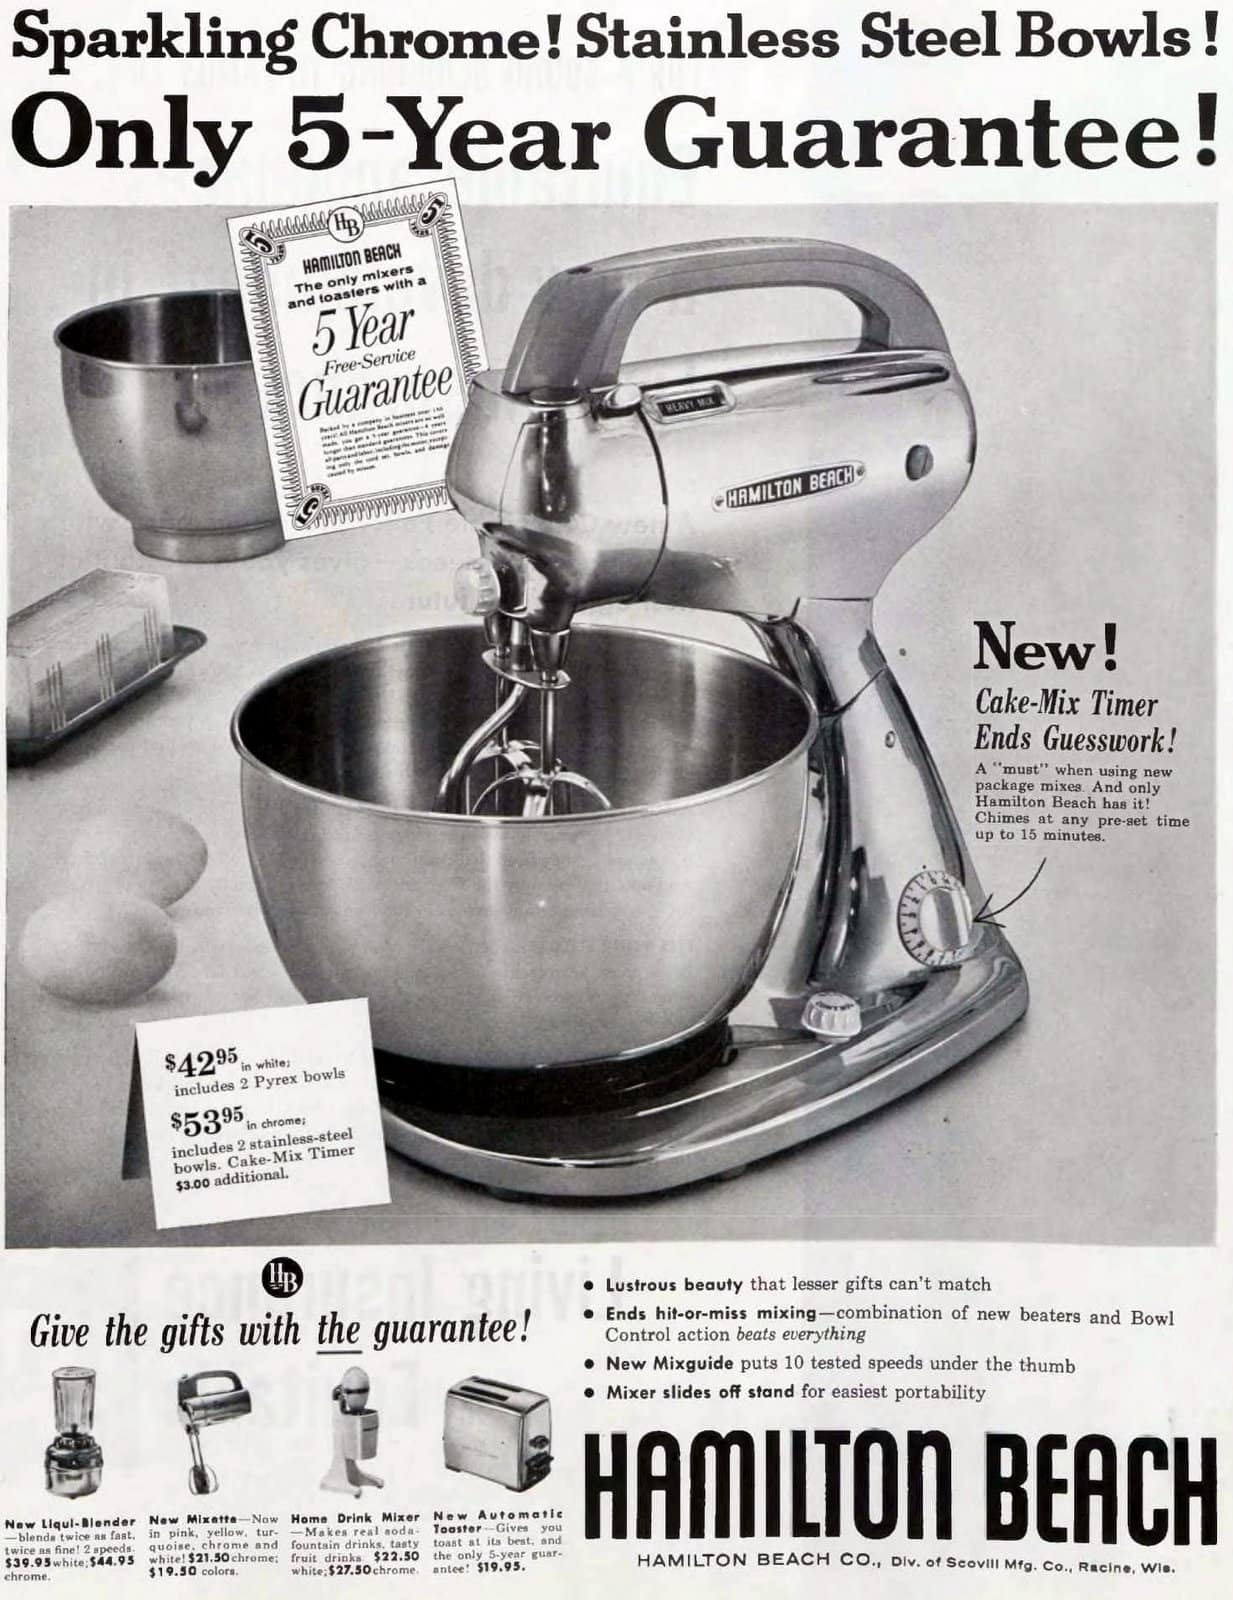 Vintage chrome and stainless steel Hamilton Beach stand mixer (1956)